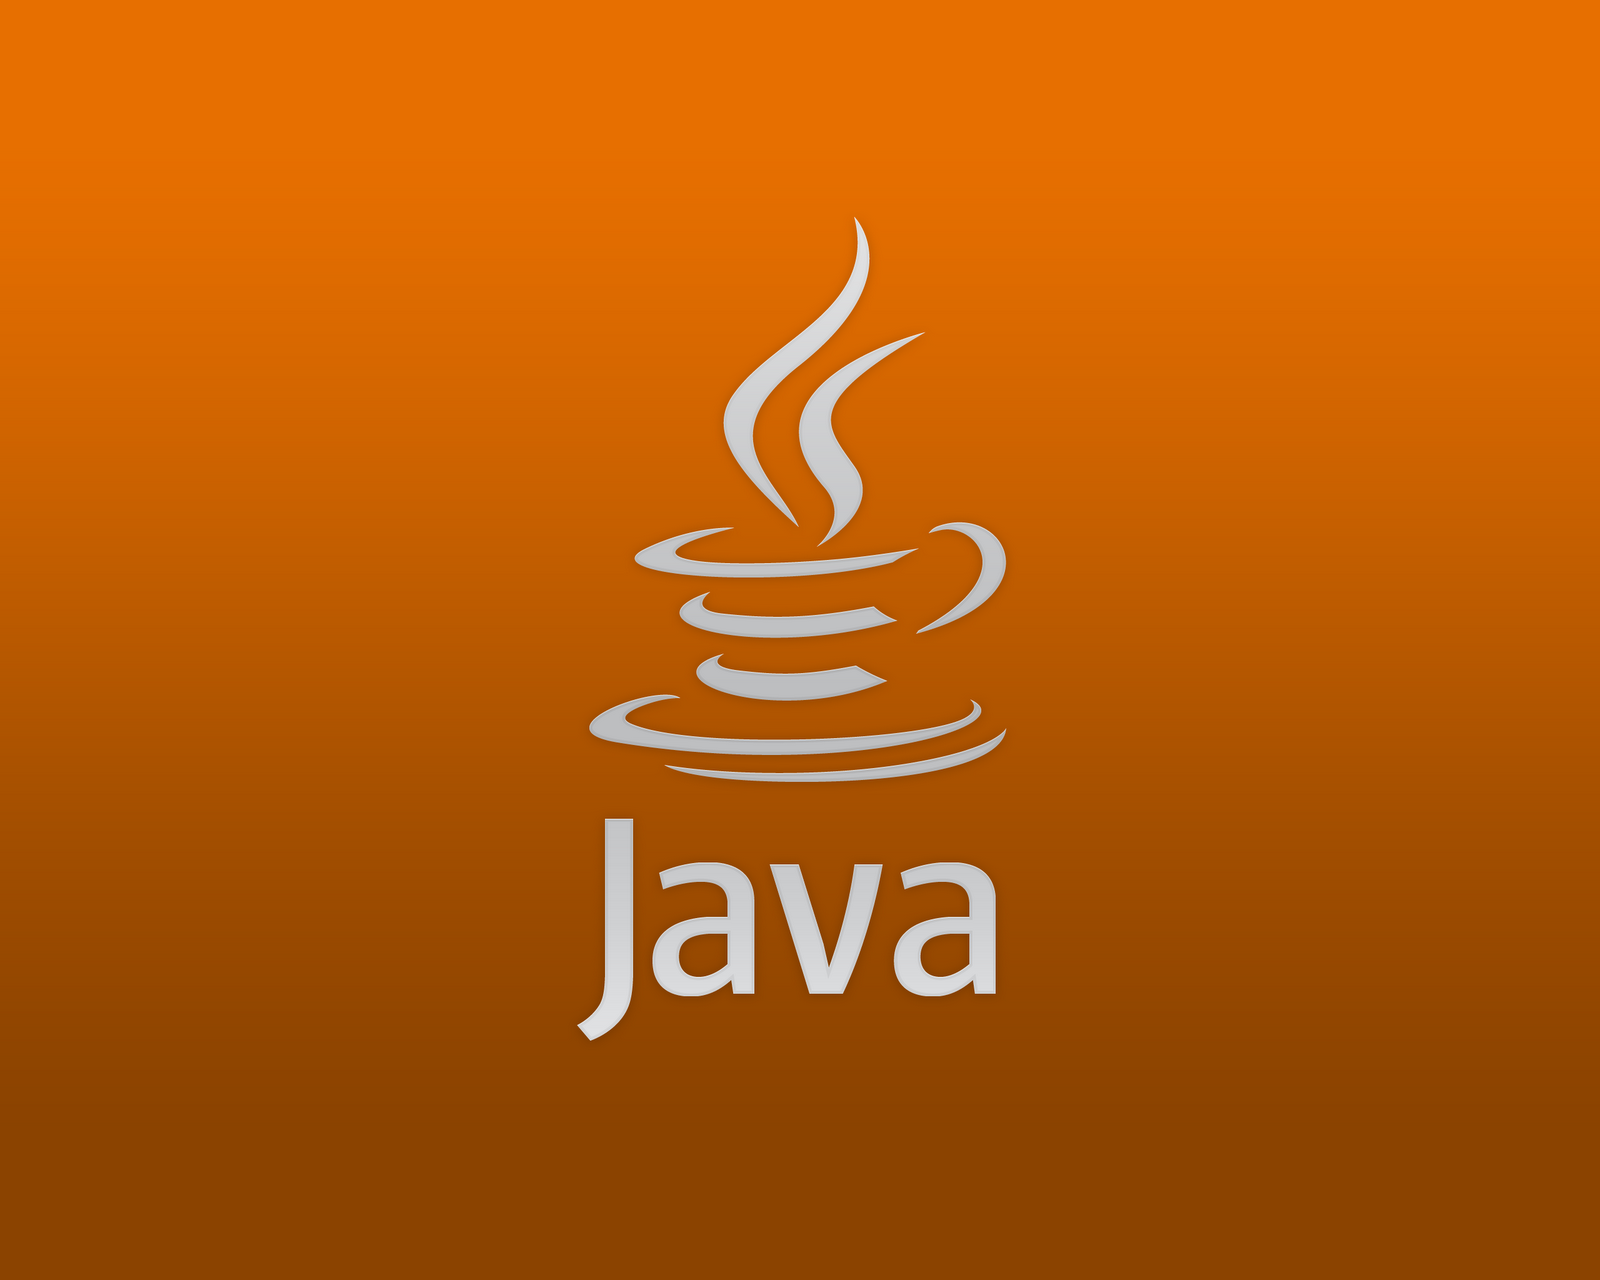 How To Sort Object In Java